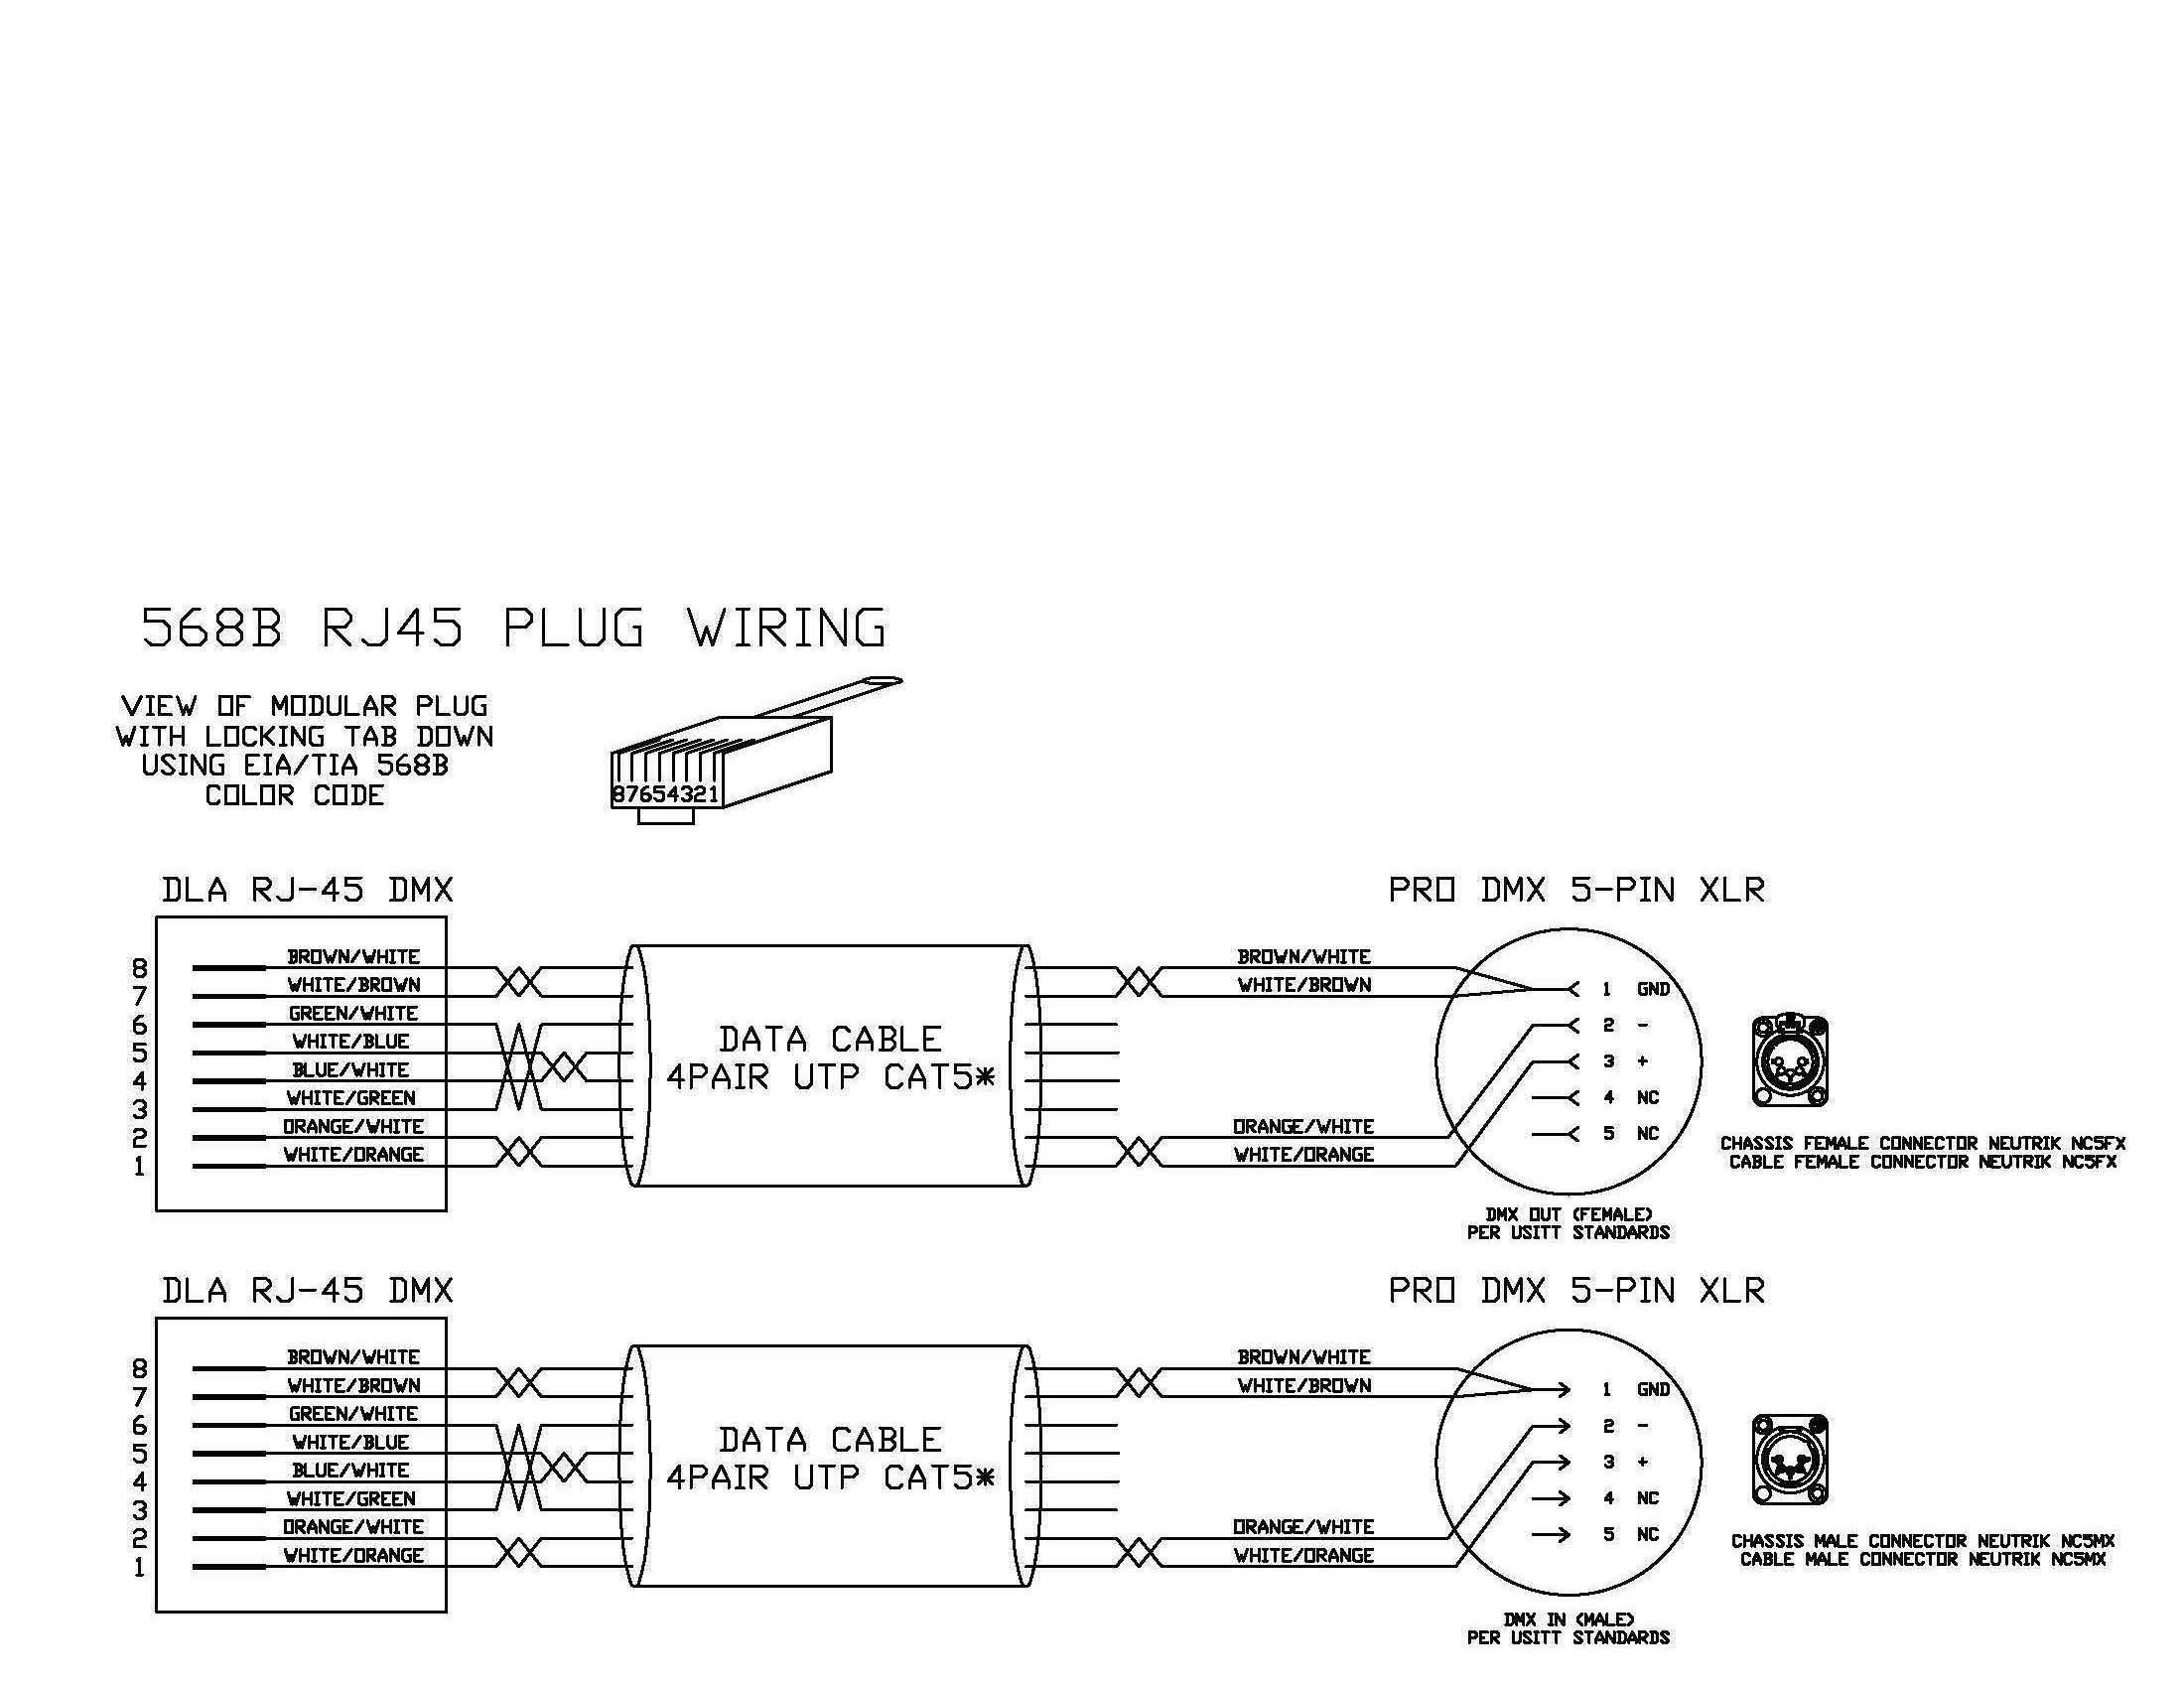 Xlr To Rj45 Wiring Diagram. Xlr. Electrical Wiring Diagrams